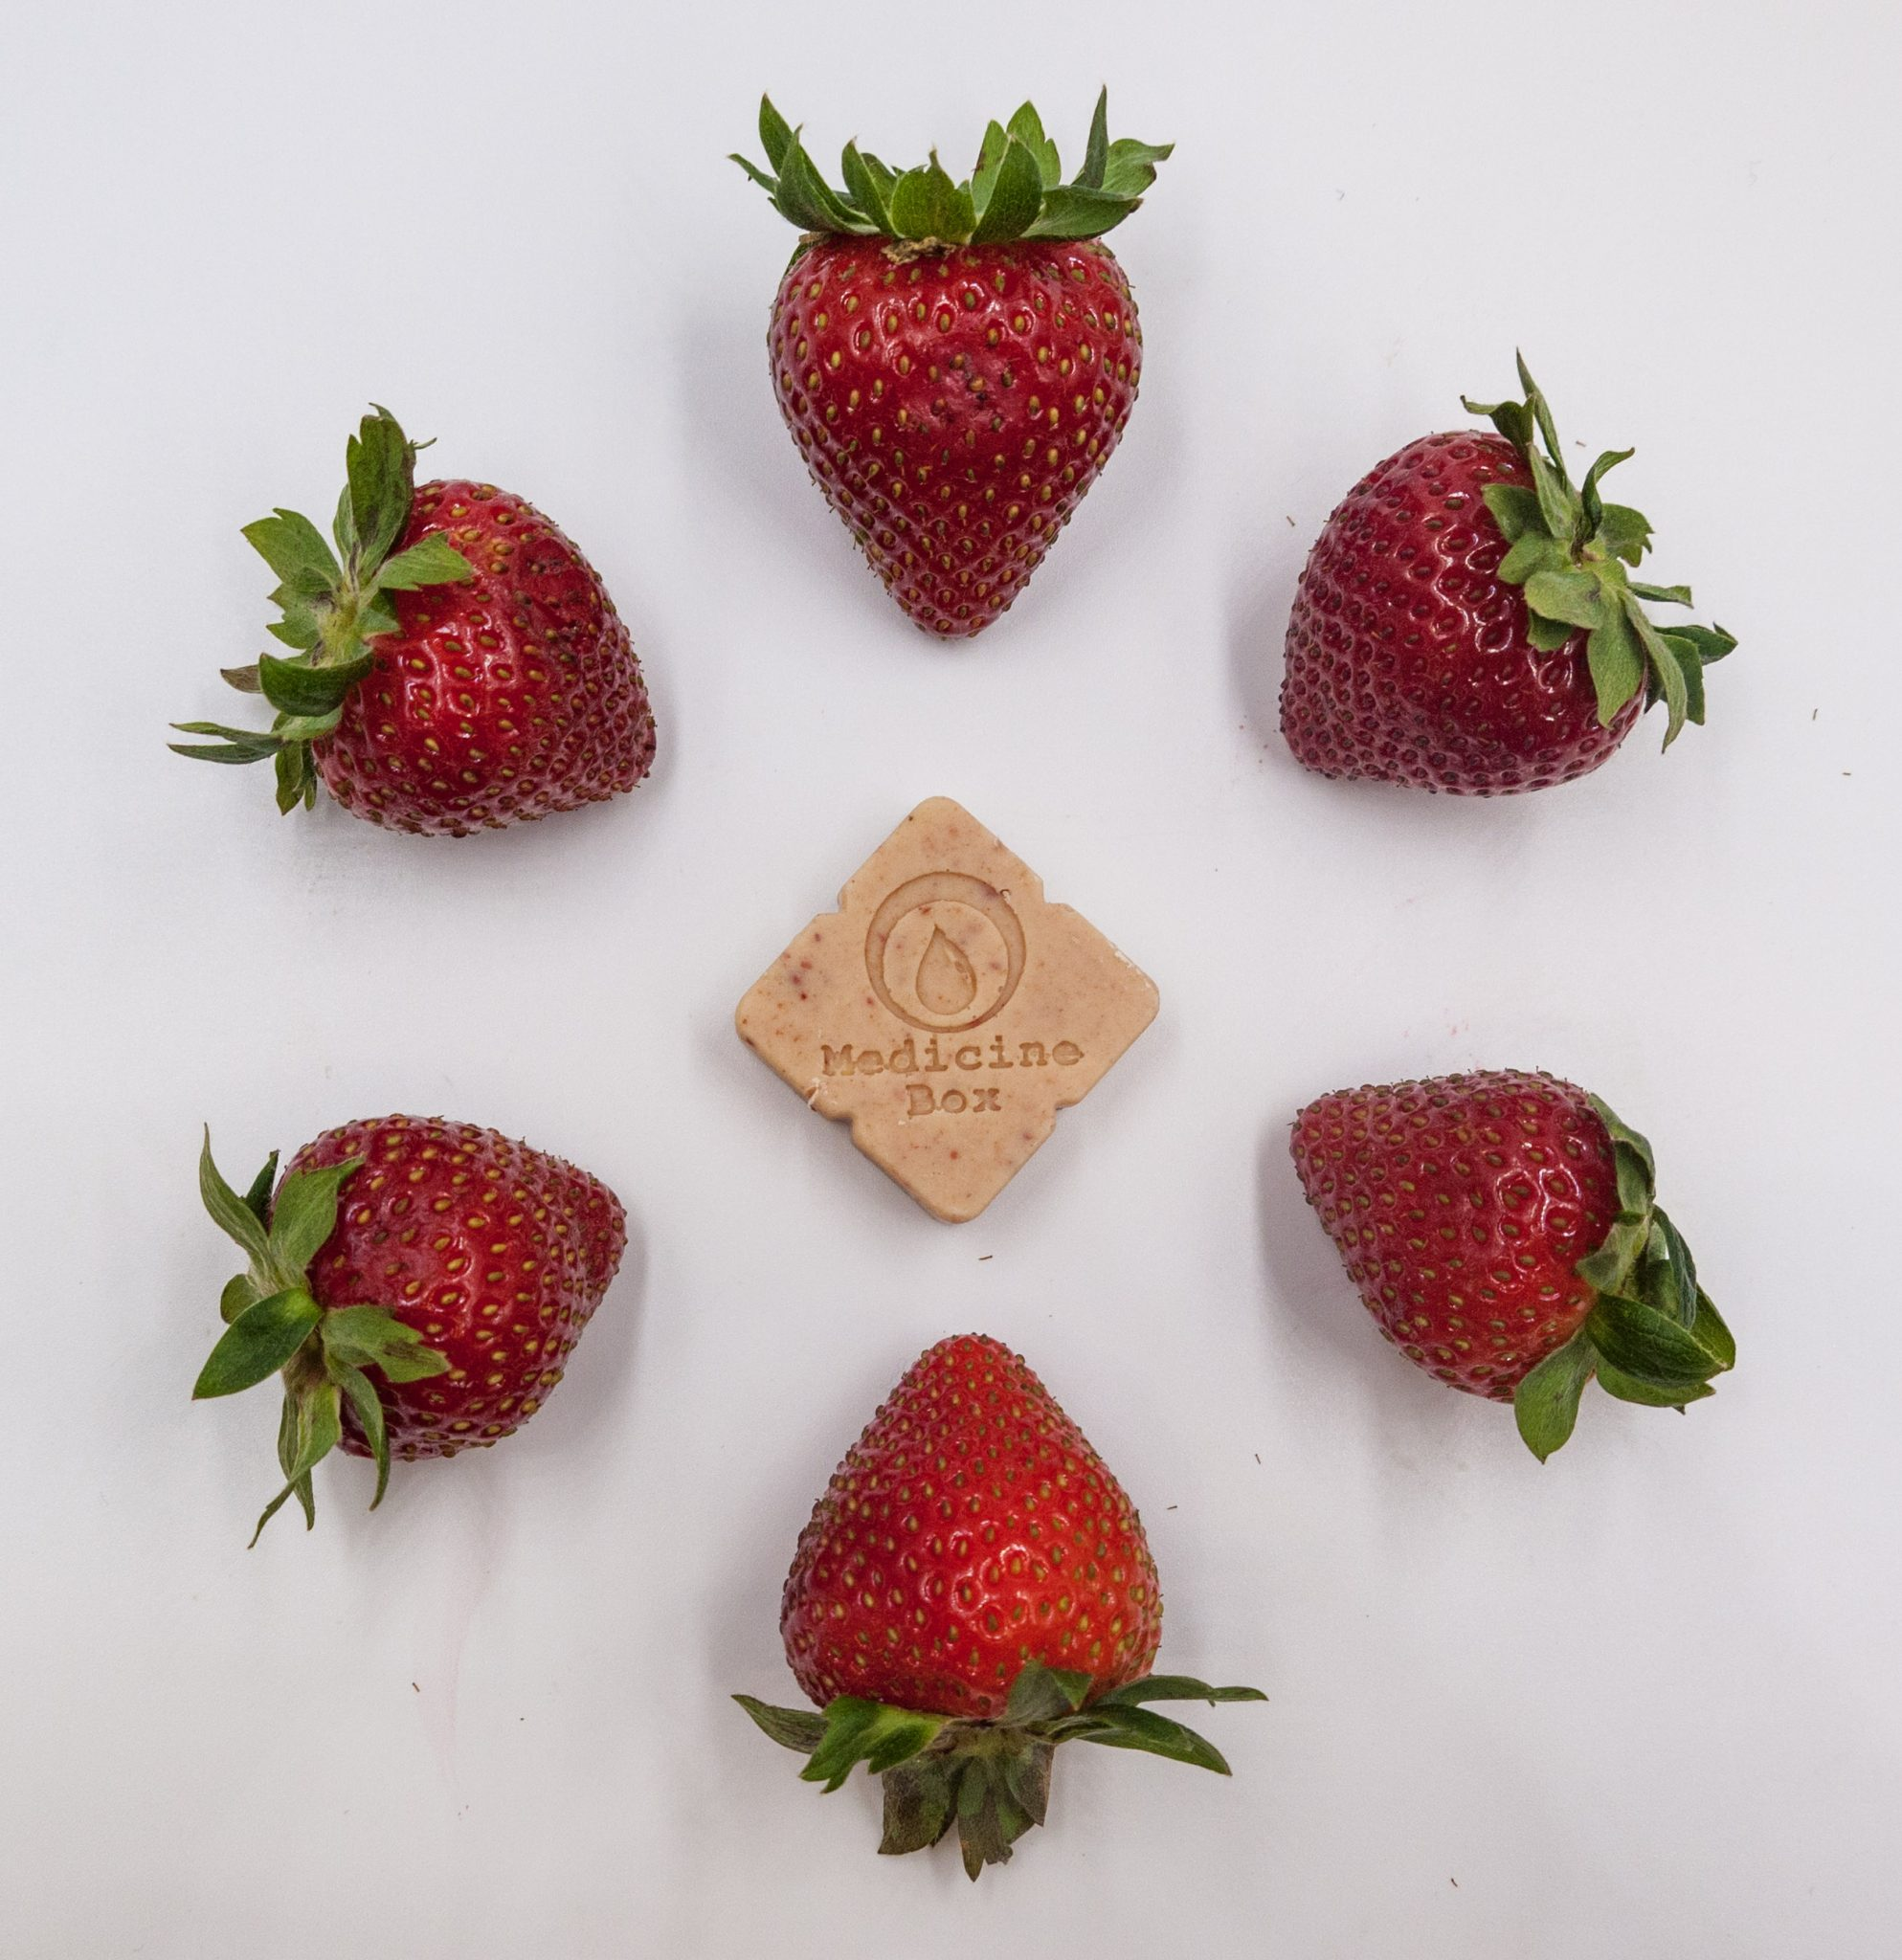 Strawberry truffles from our previous edibles line